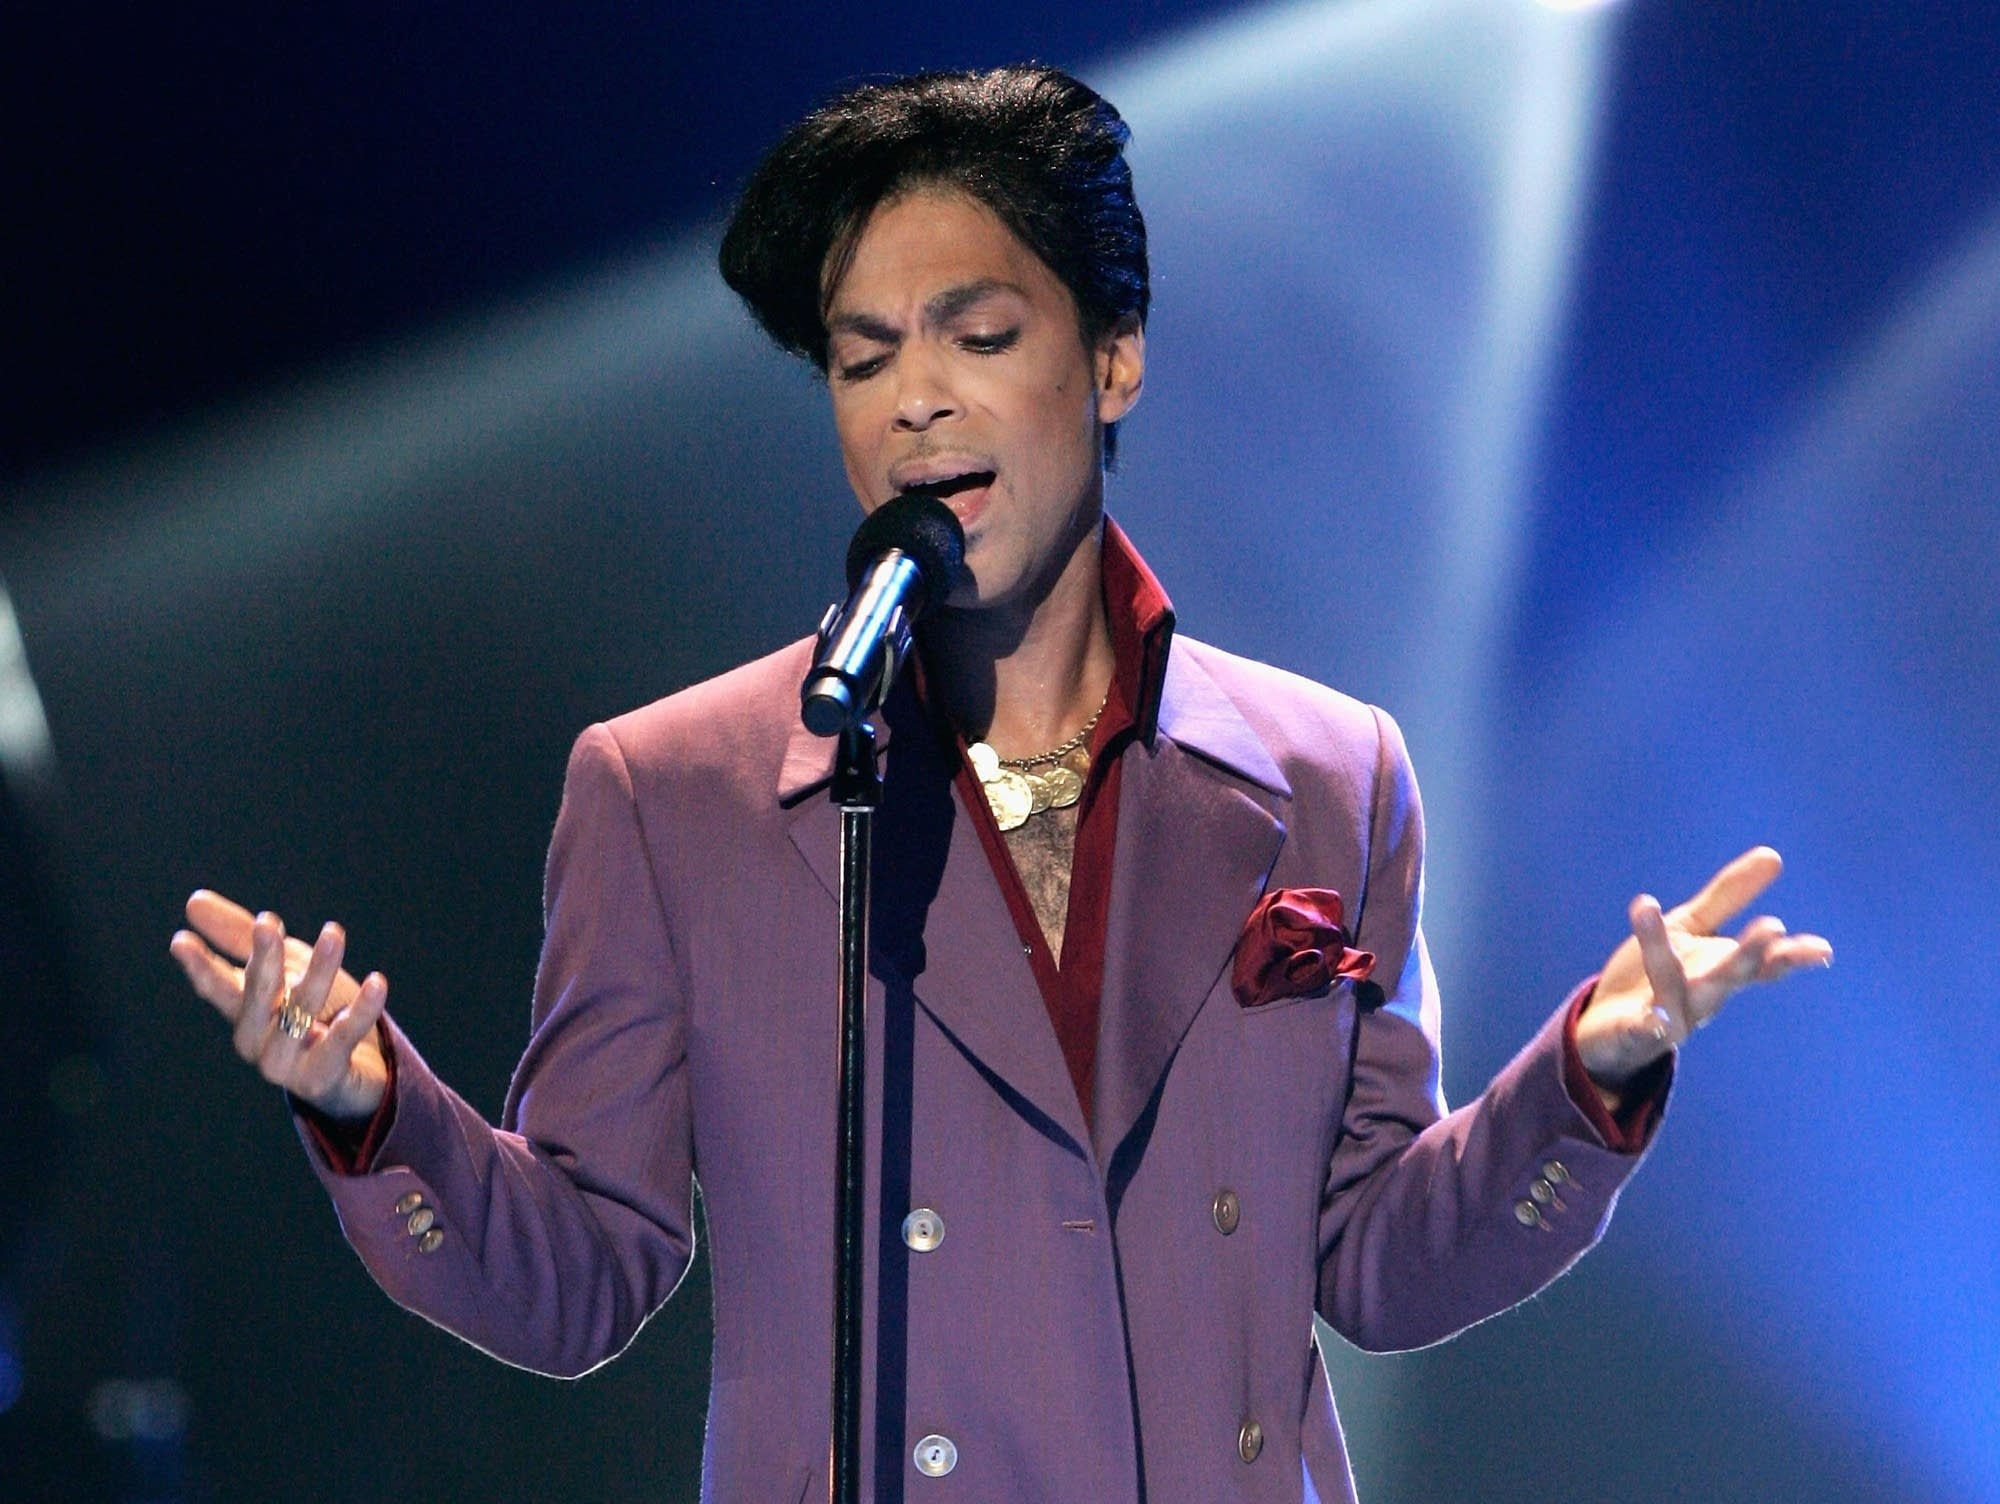 Prince performs on American Idol